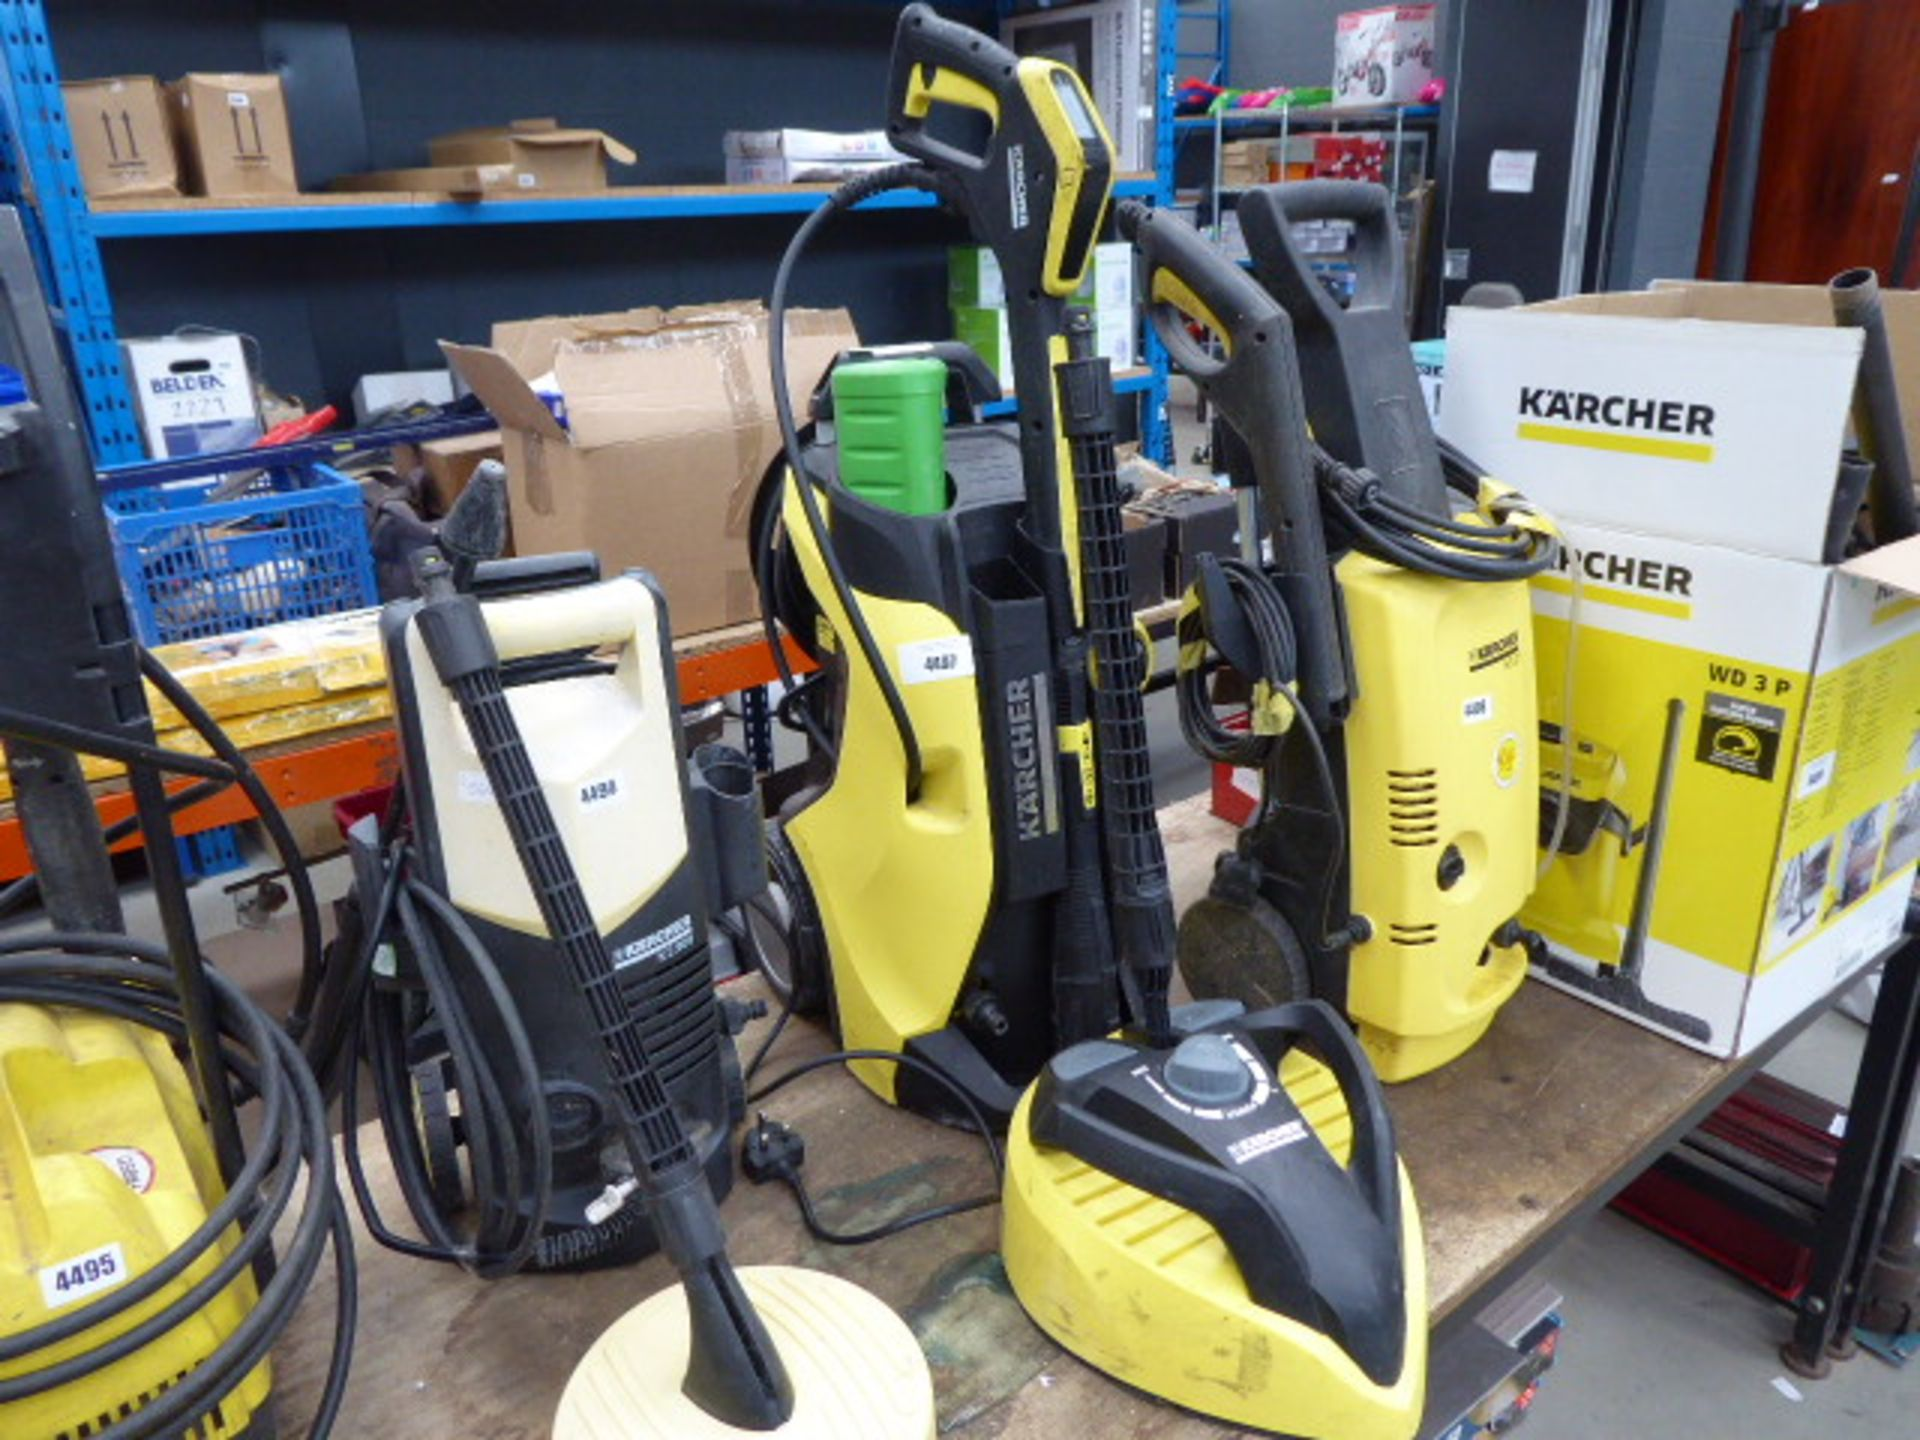 Lot 4497 - 4434 Karcher K7 full control electric pressure washer with patio cleaning head